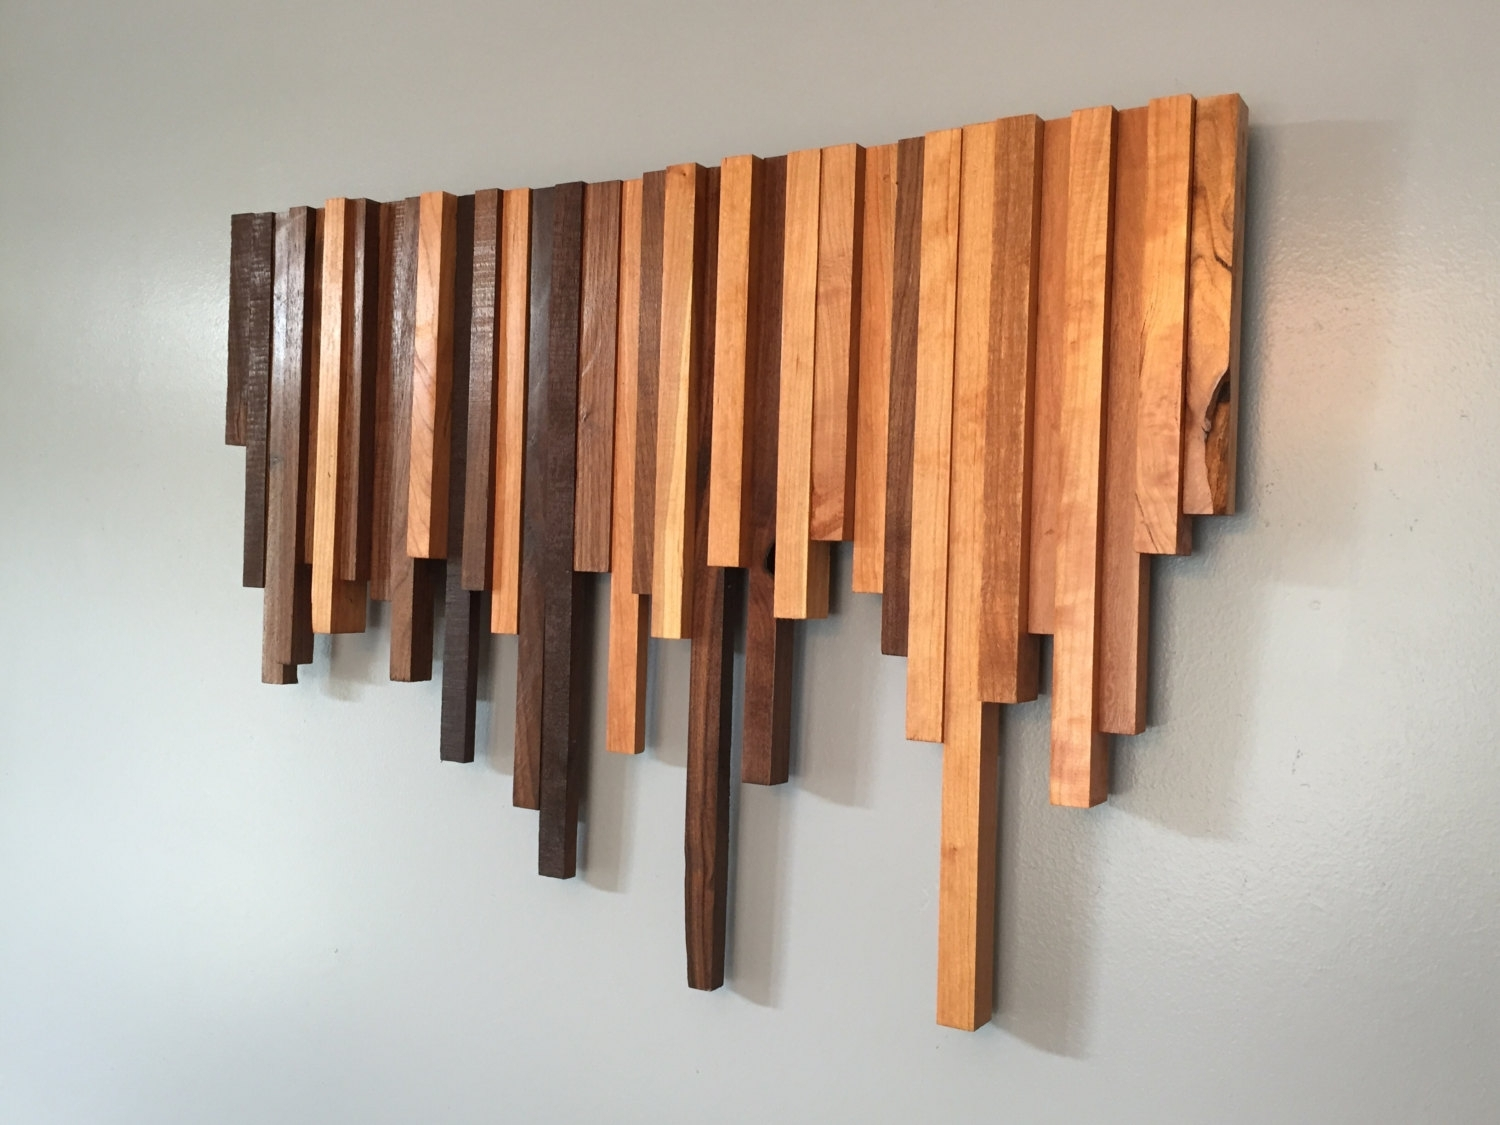 Creative Wood Wall Art Decor : Stylish Wood Wall Art Decor Inside Most Current Wooden Wall Art (View 6 of 15)